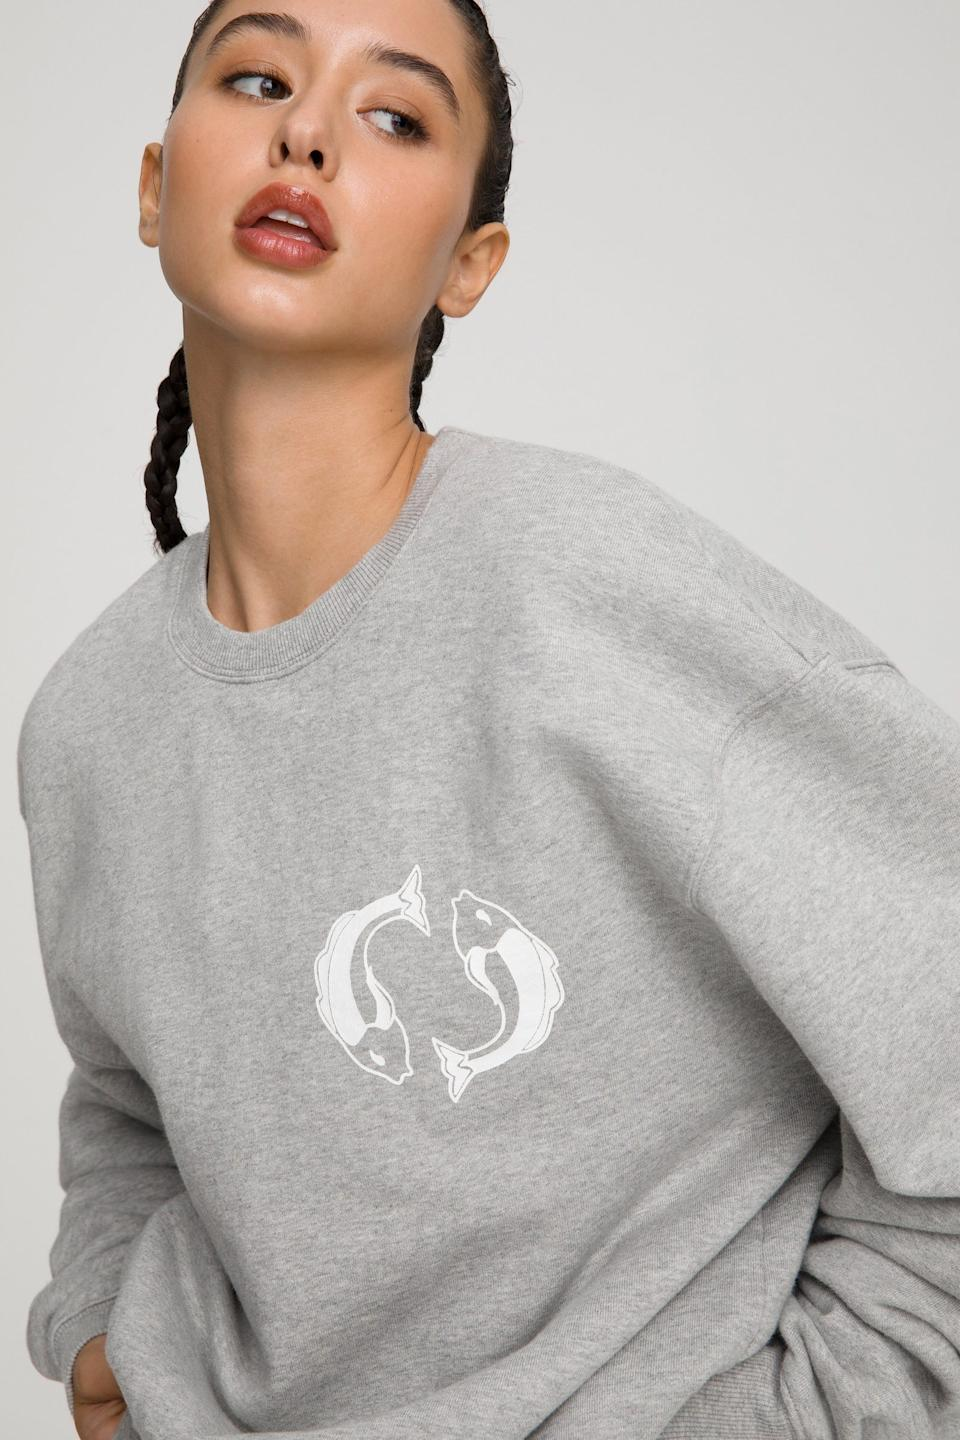 The Pisces Zodiac Sweat Set from Good American. Sweatshirt, $124 and sweatpants $105.